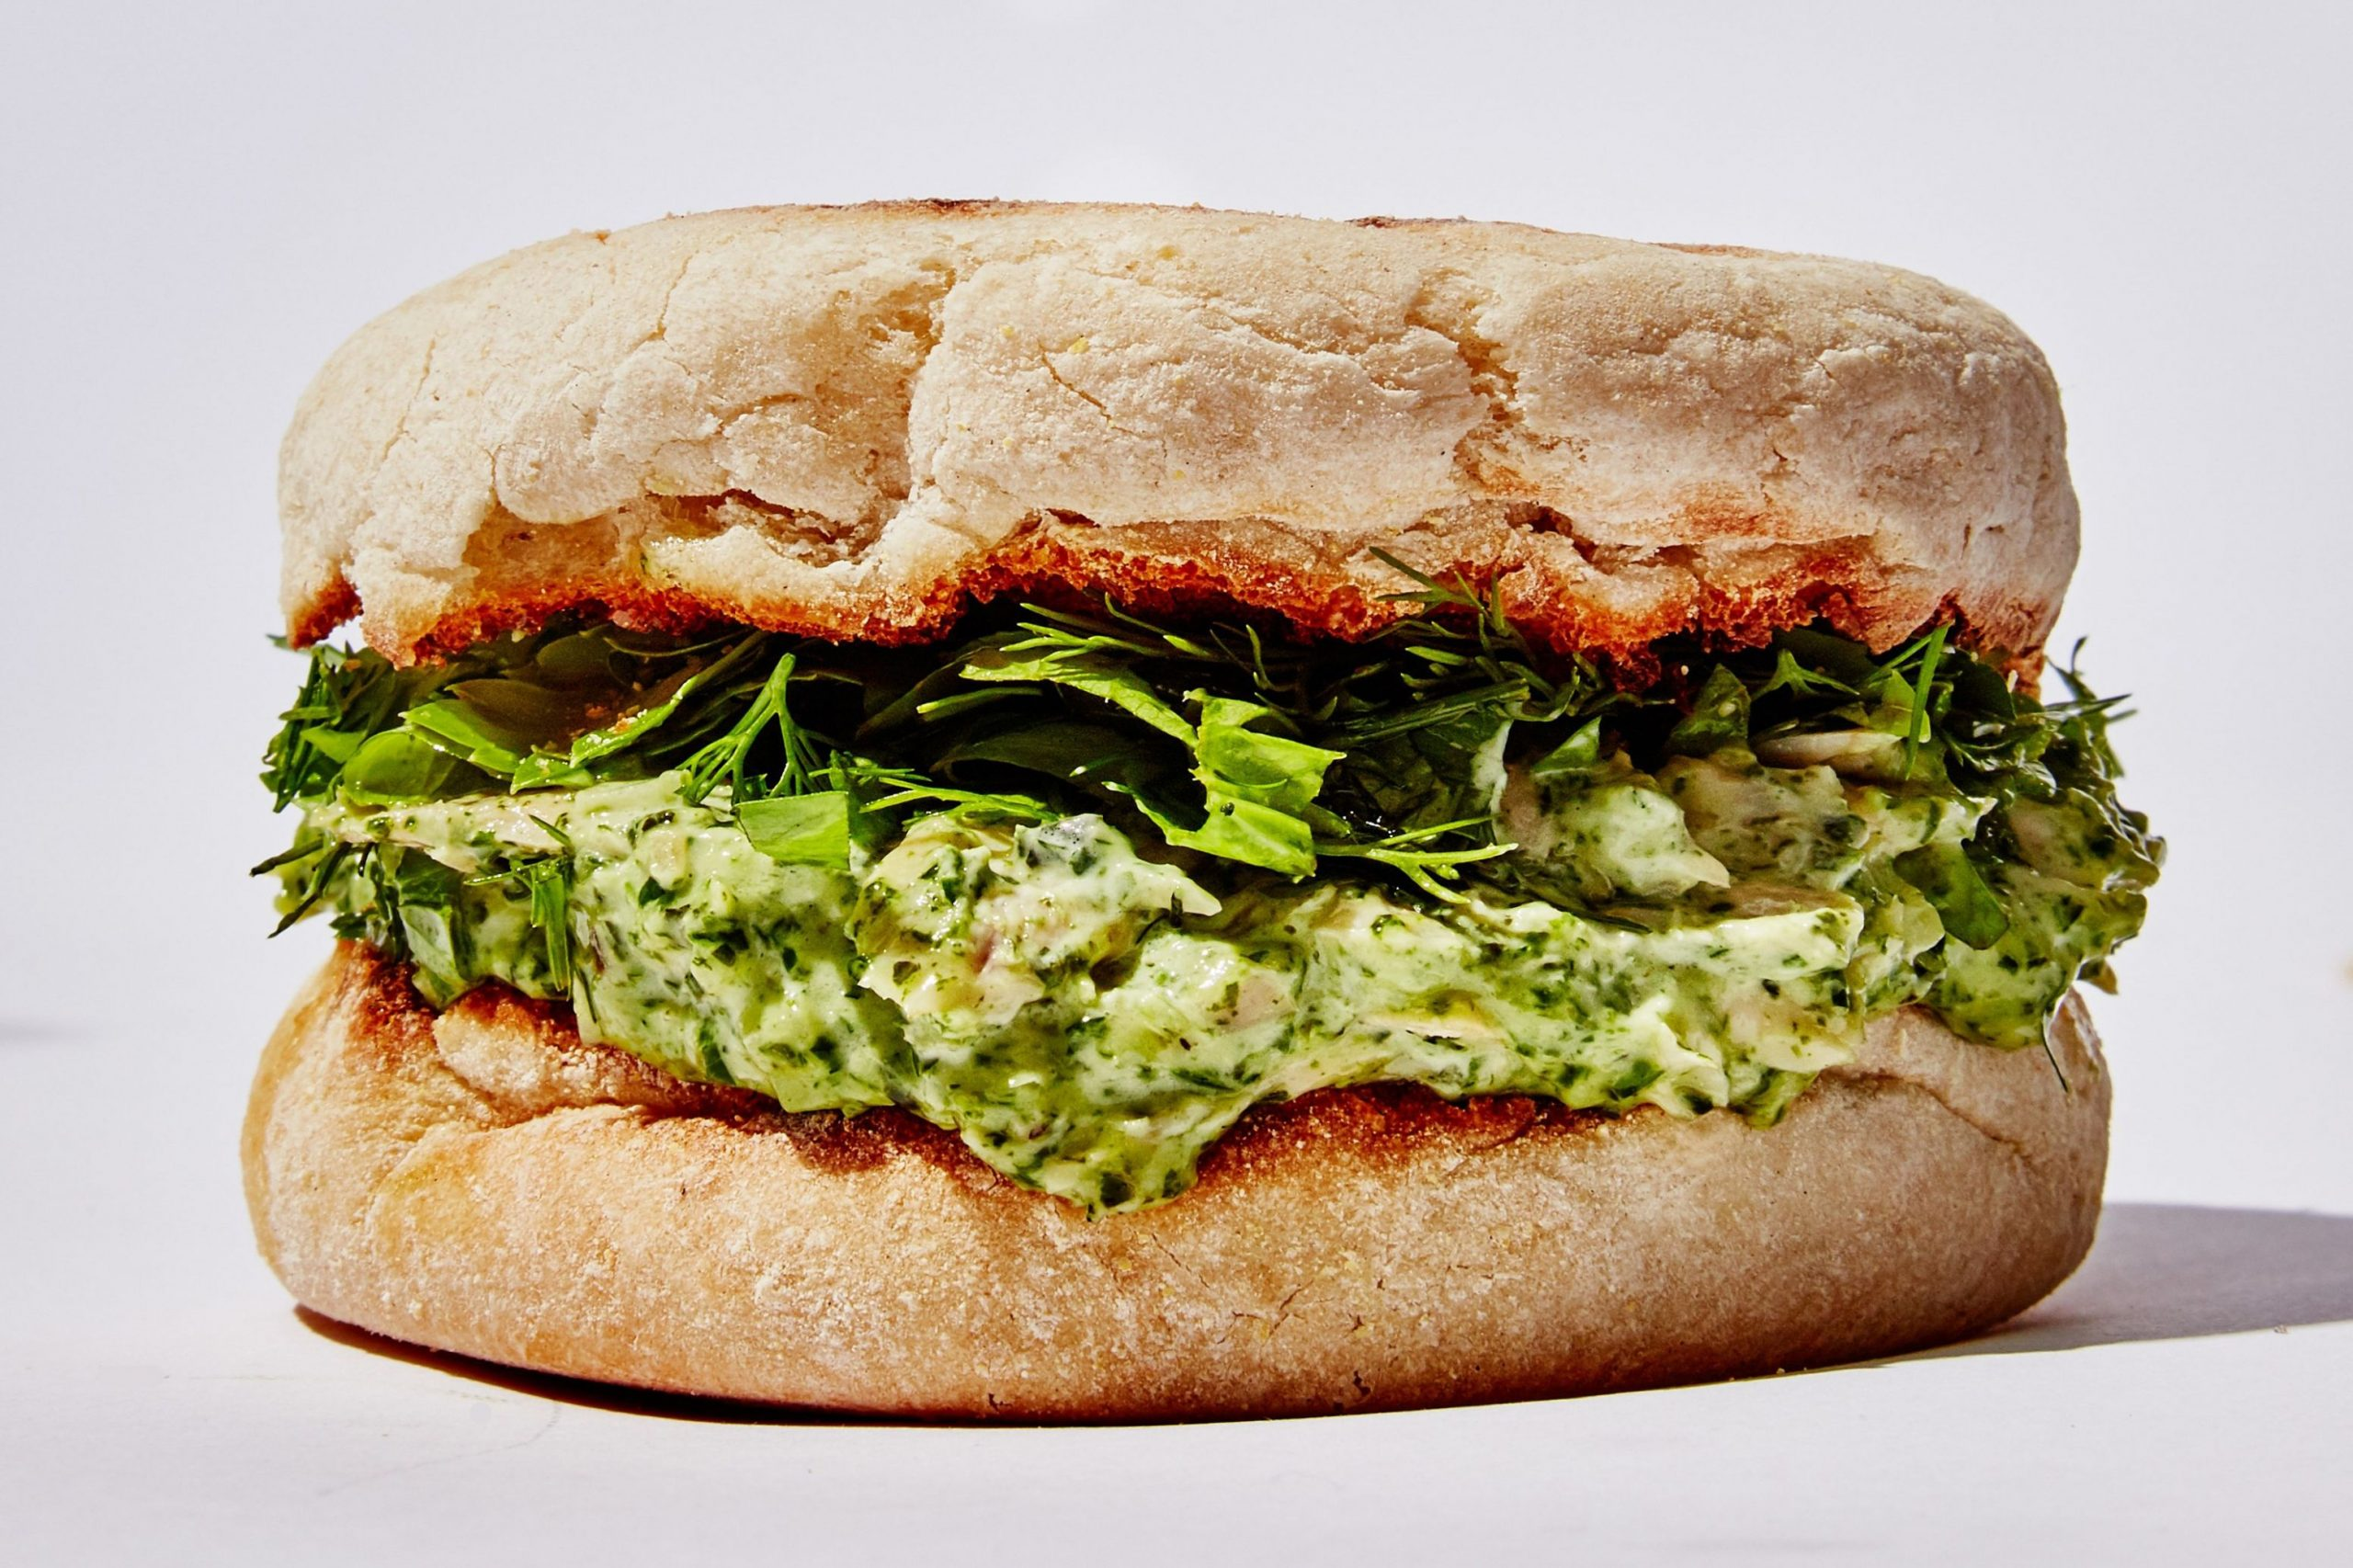 Green Goddess Tuna Salad Sandwich - Sandwich Recipes Epicurious